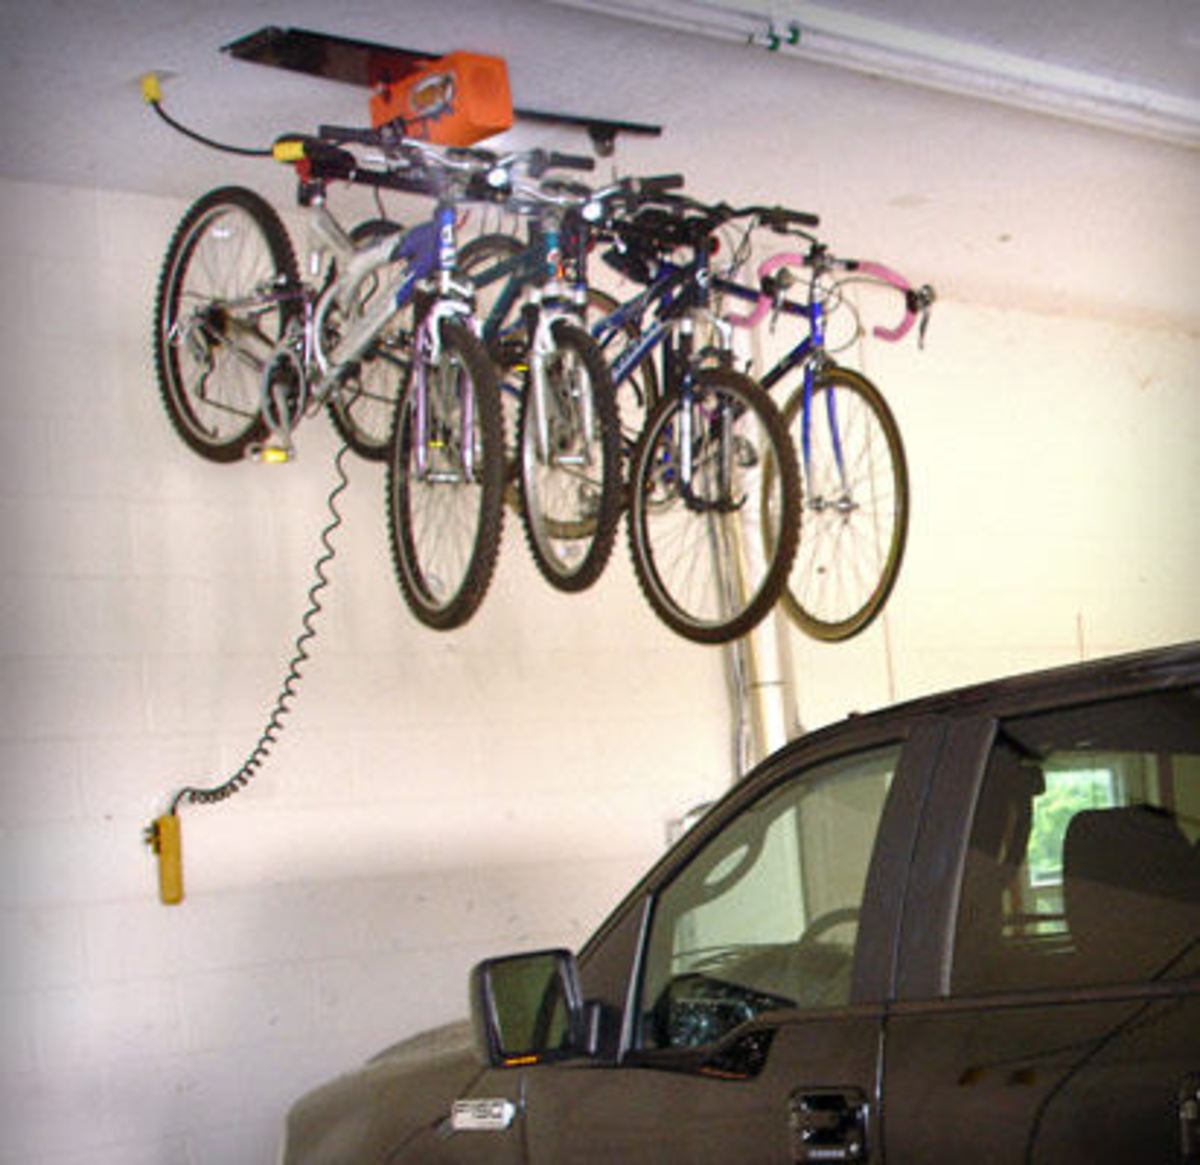 Bike Storage for Garage